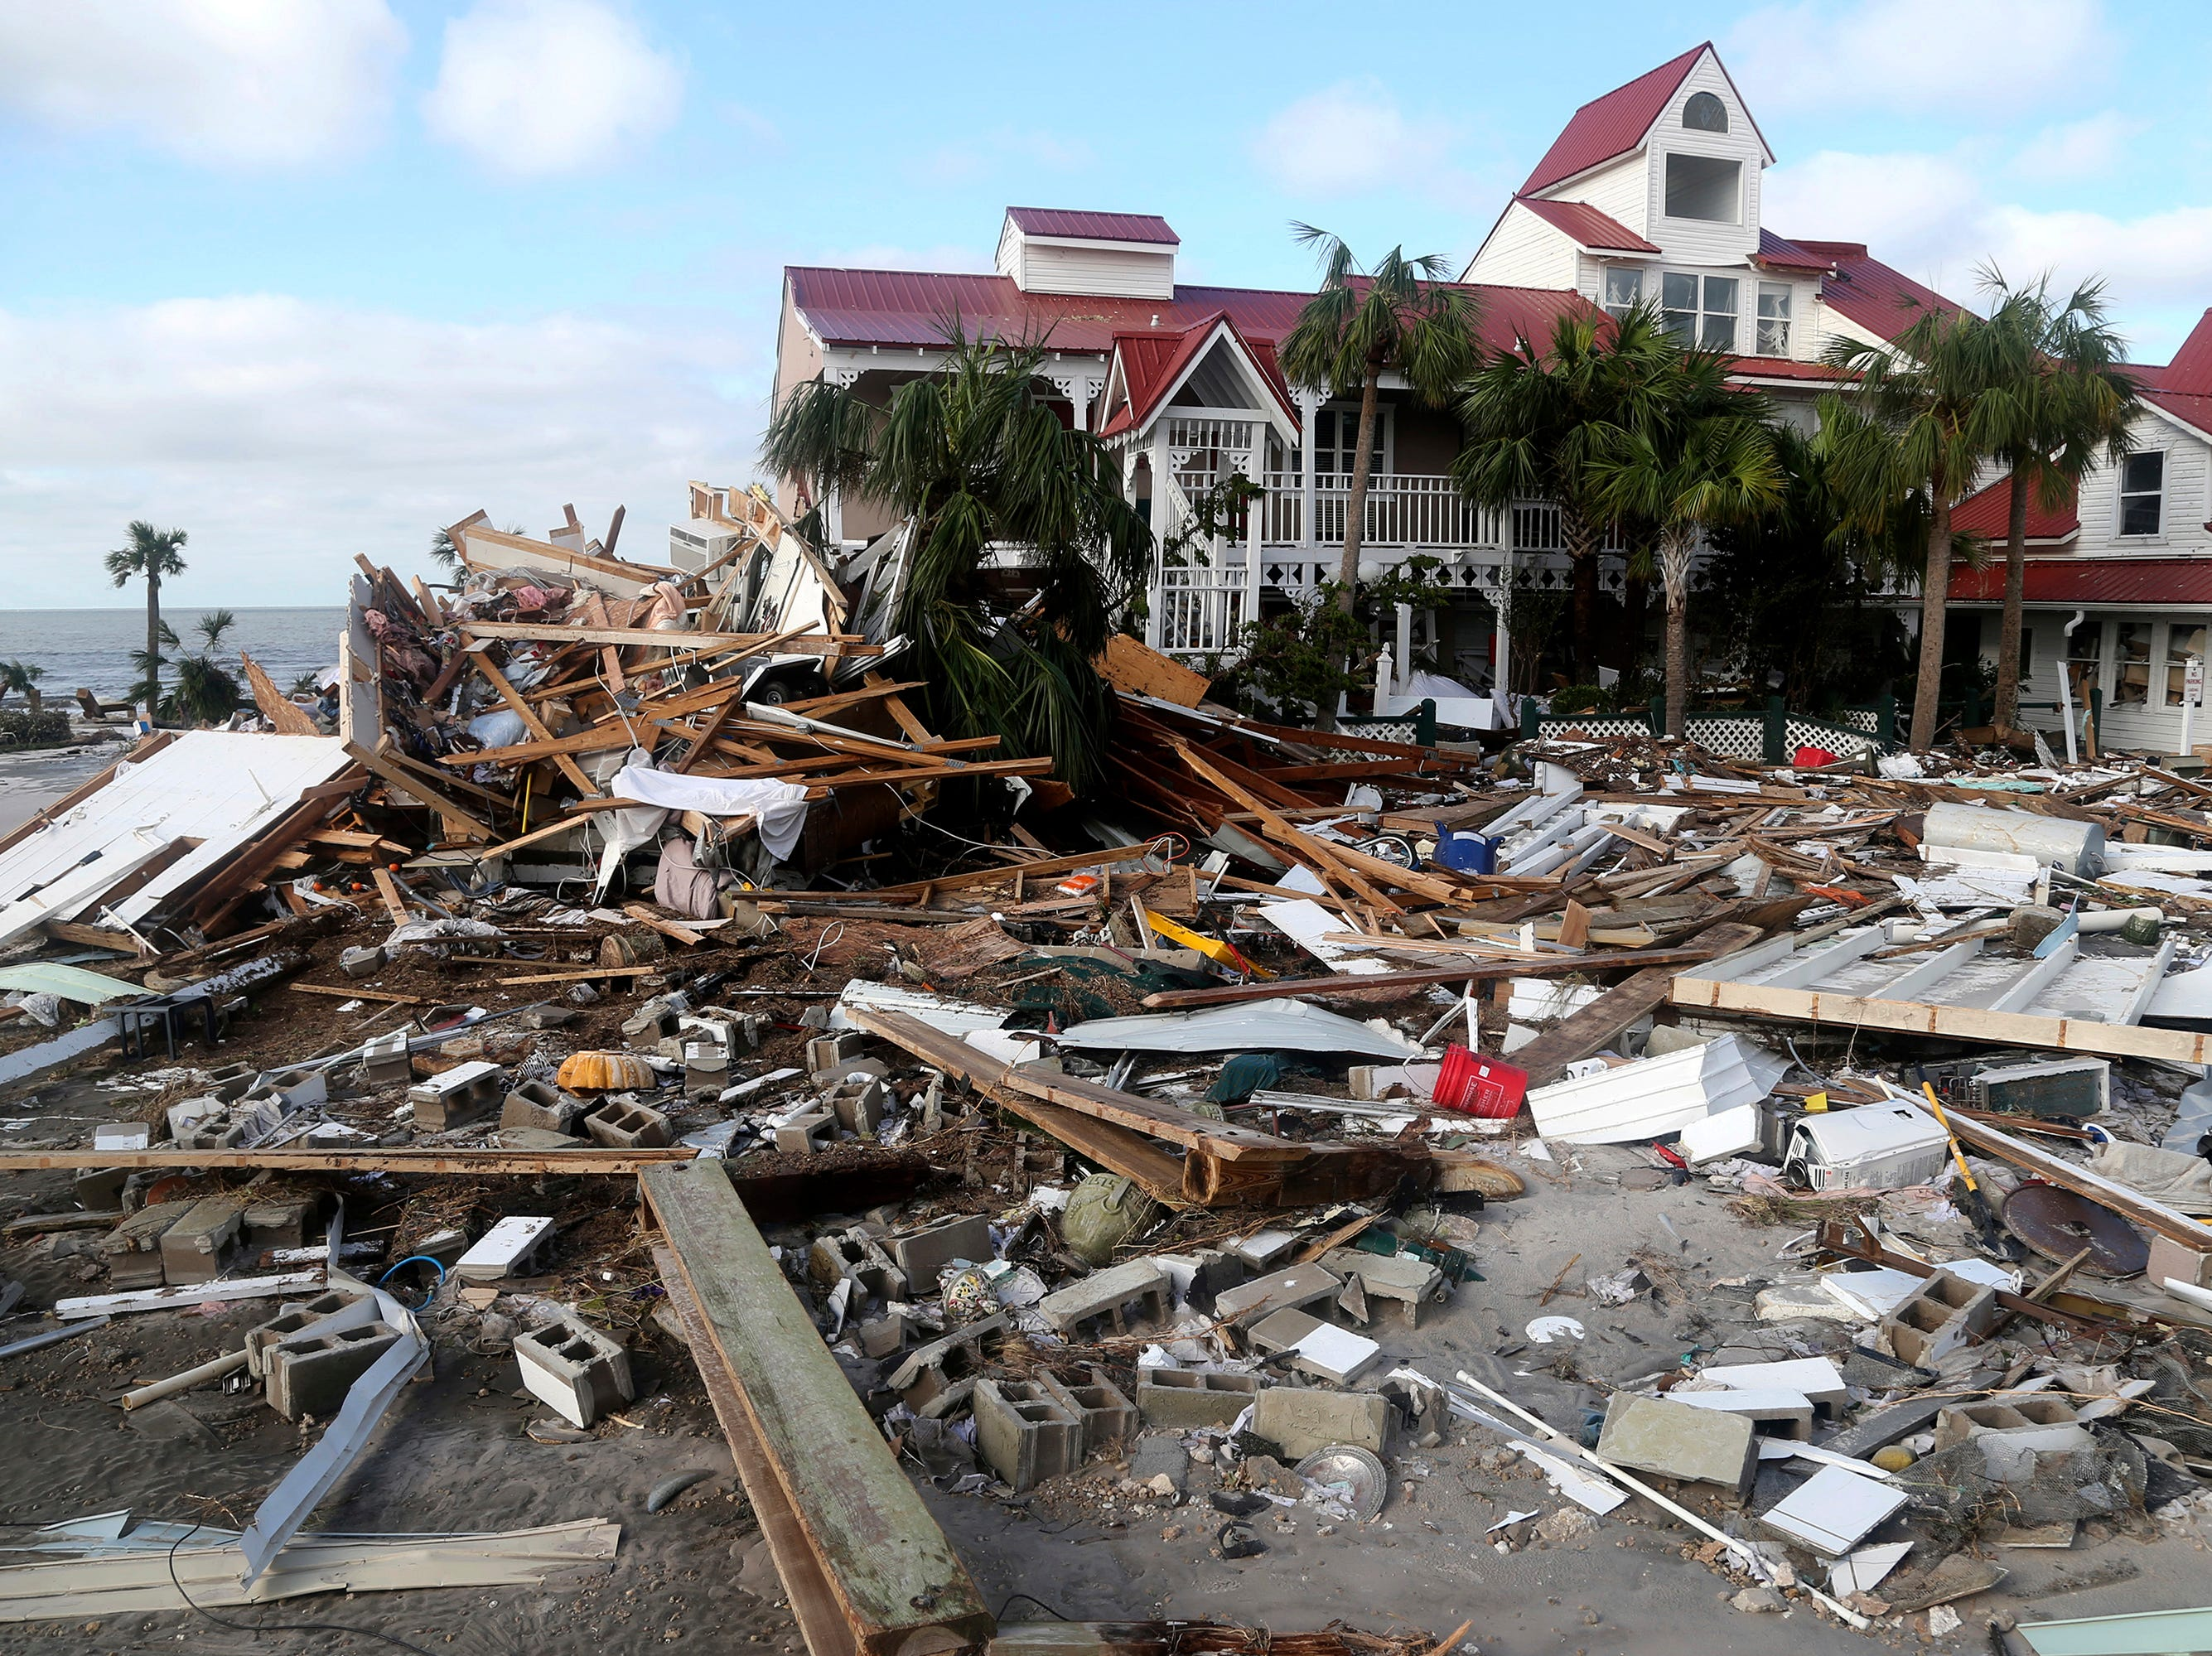 The coastal township of Mexico Beach, Fla., population 1200, lay devastated on Thursday, Oct. 11, 2018, after Hurricane Michael made landfall on Wednesday in the Florida Panhandle.  (Douglas R. Clifford/Tampa Bay Times via AP)